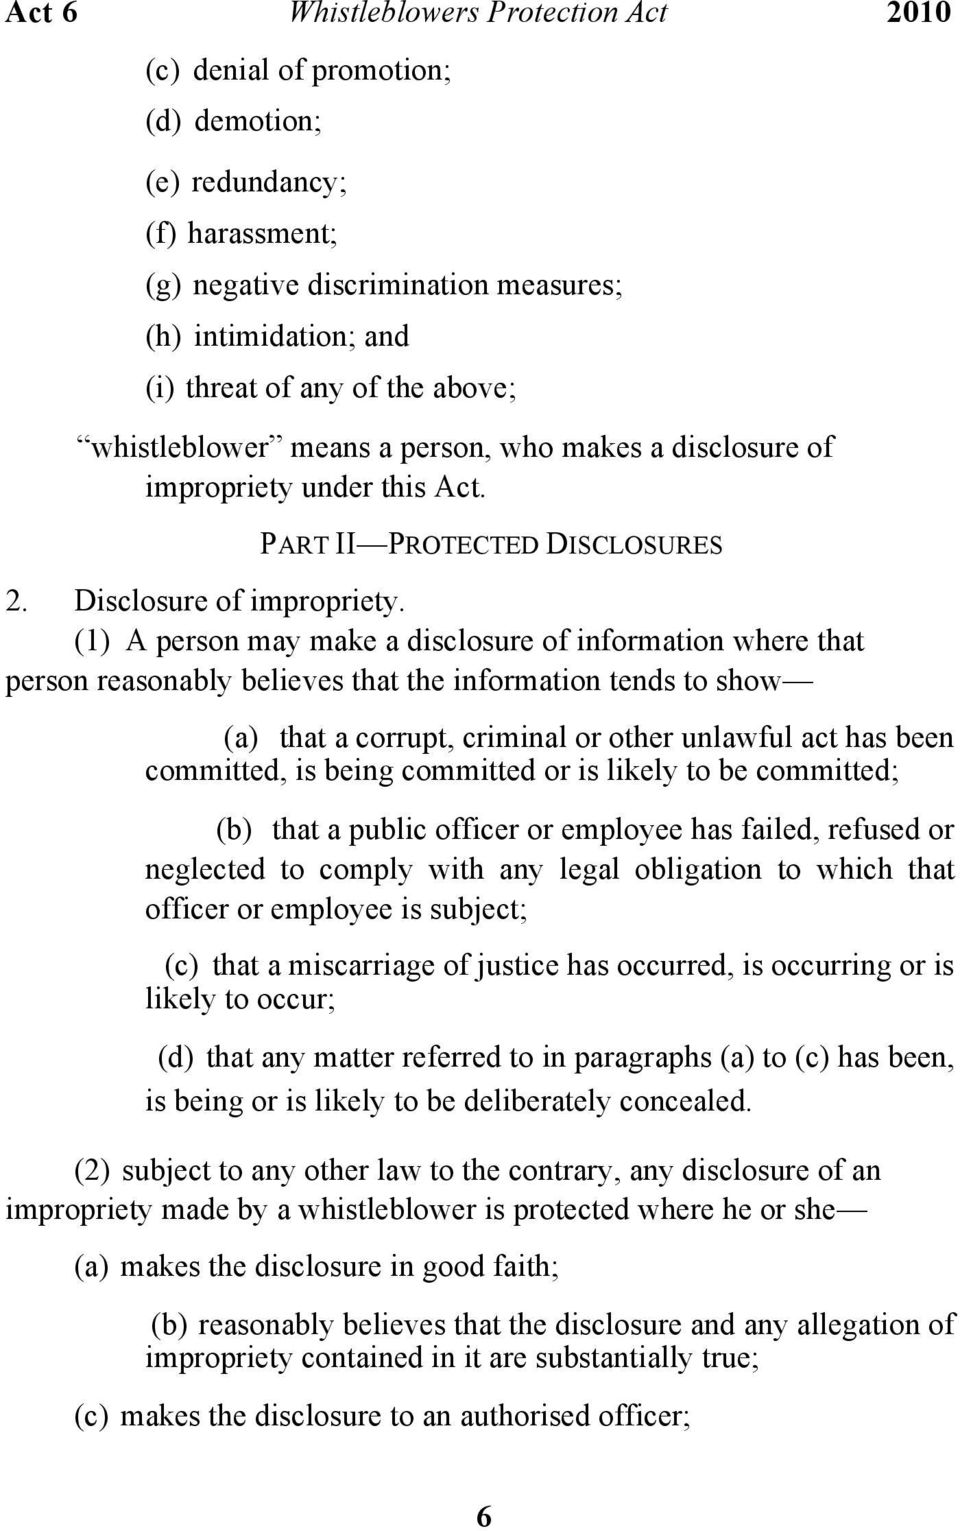 (1) A person may make a disclosure of information where that person reasonably believes that the information tends to show (a) that a corrupt, criminal or other unlawful act has been committed, is